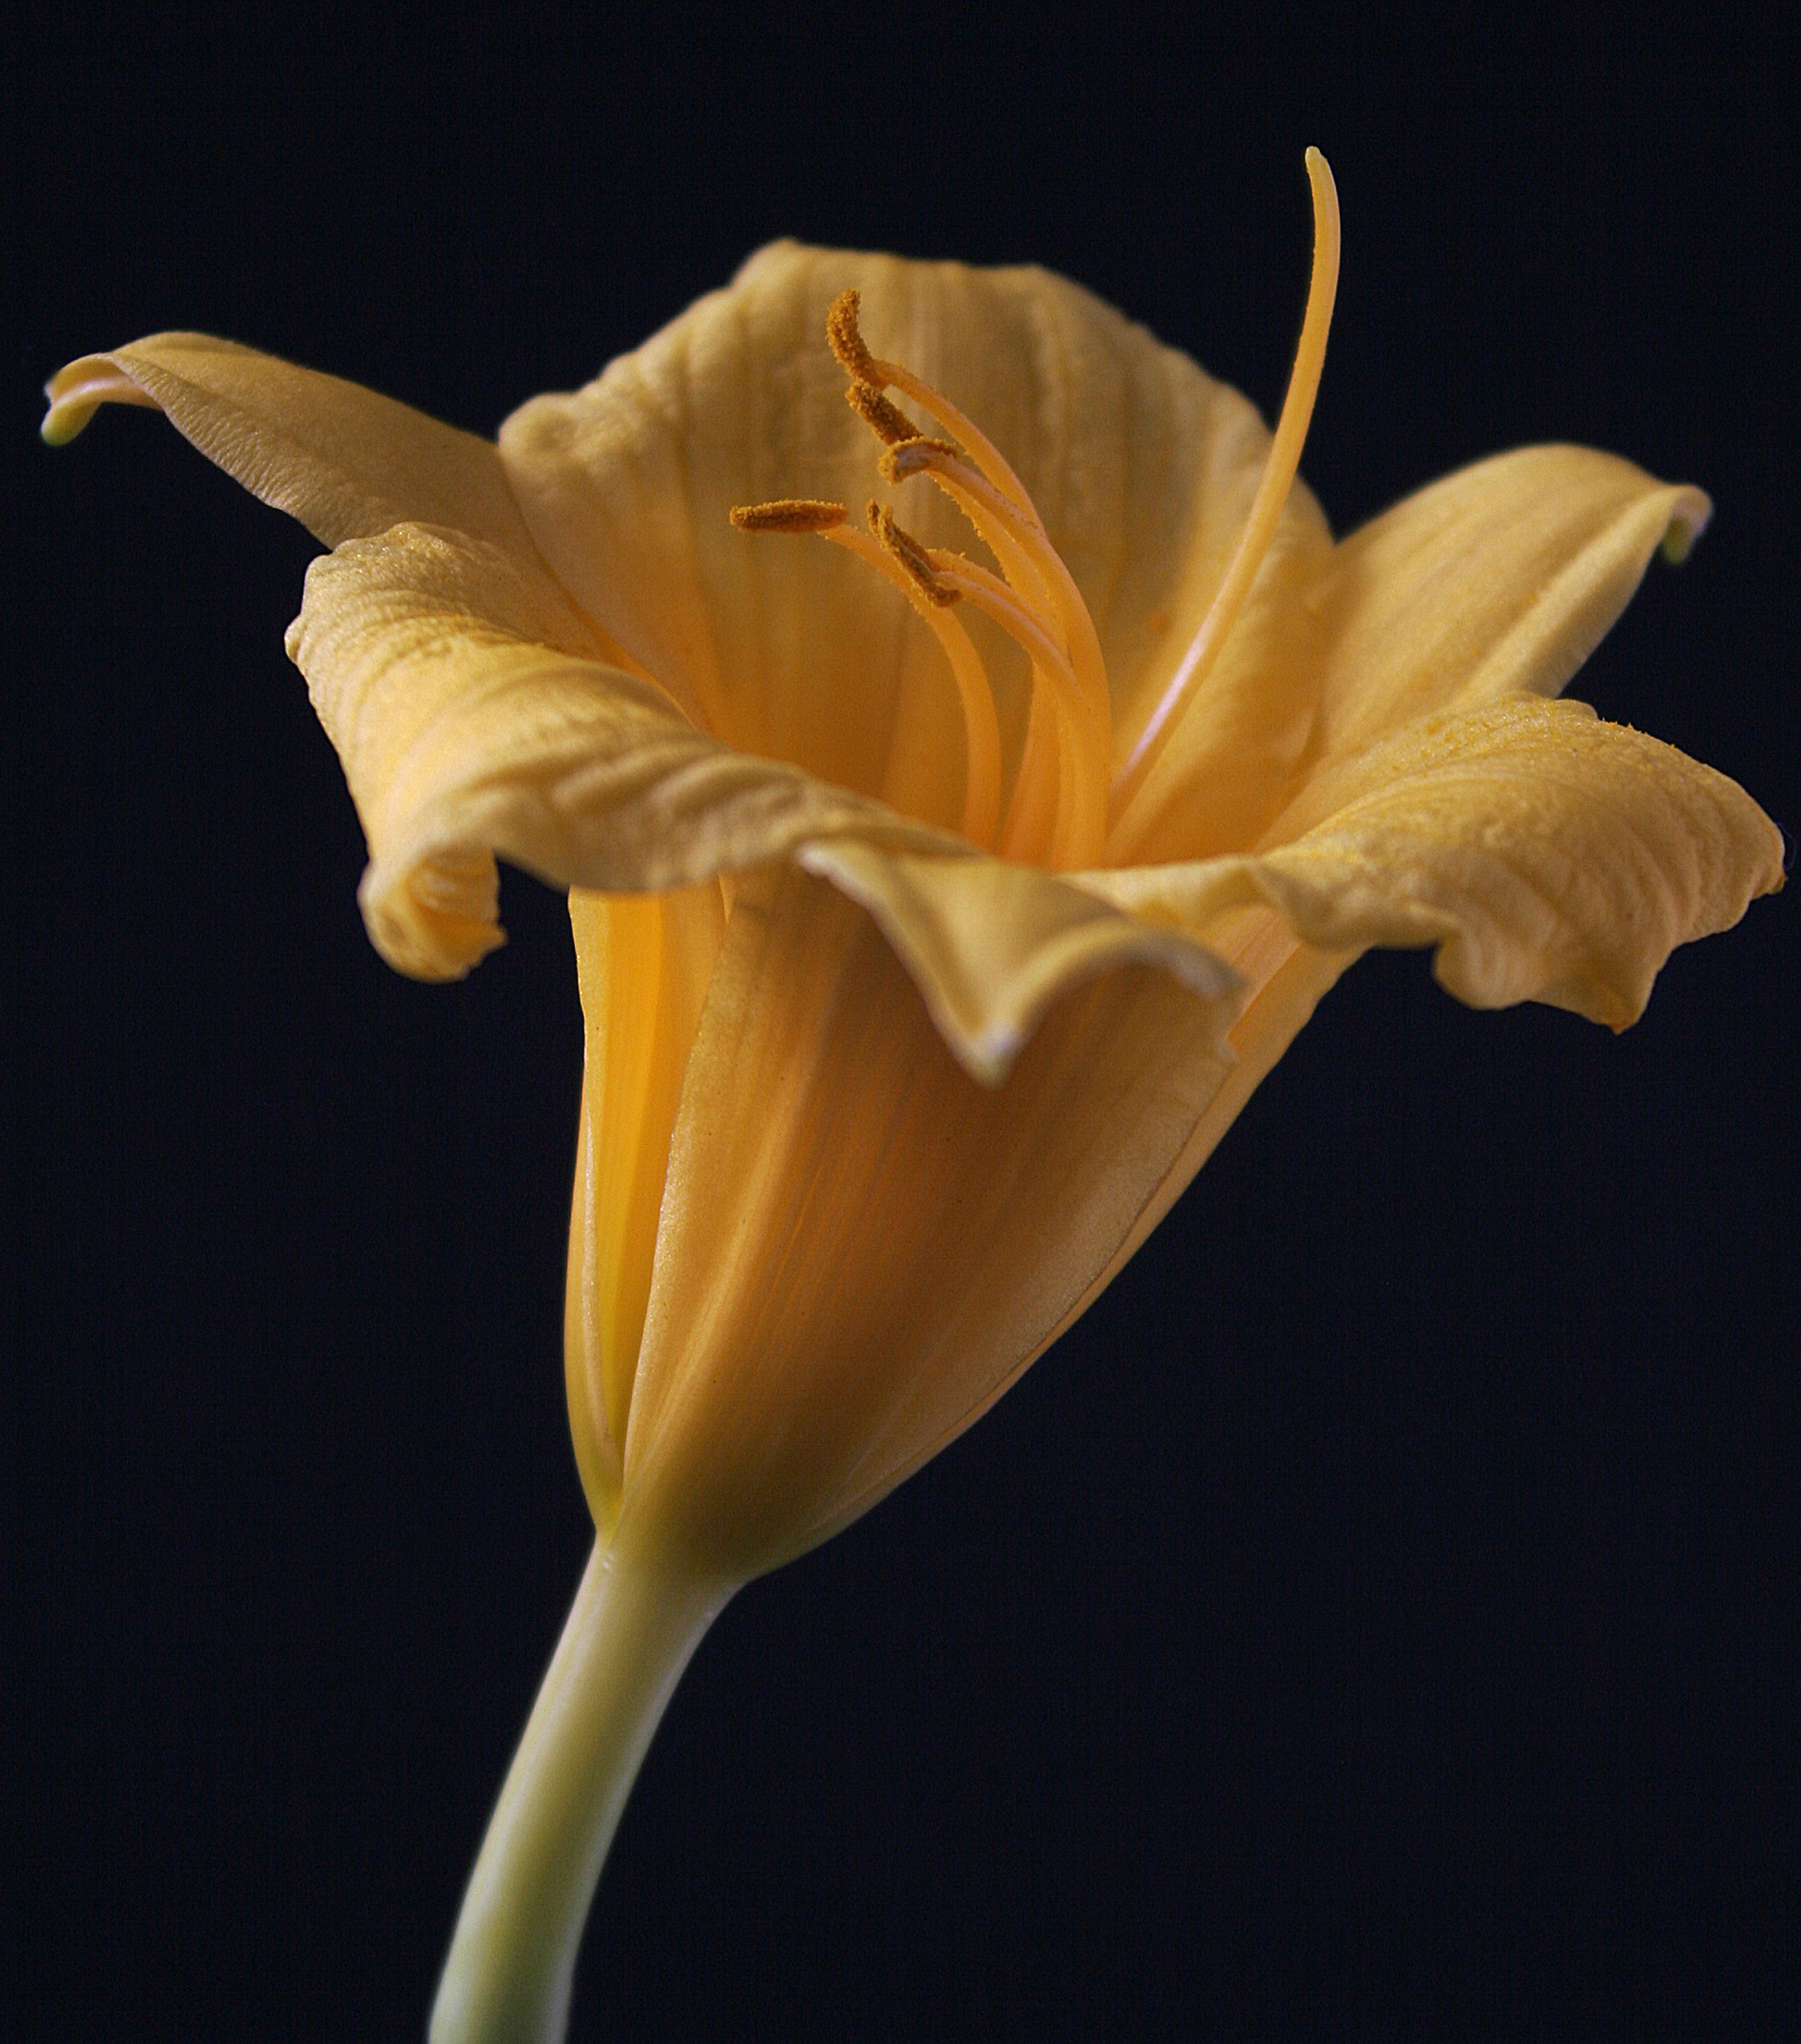 yellowdaffodil.jpg